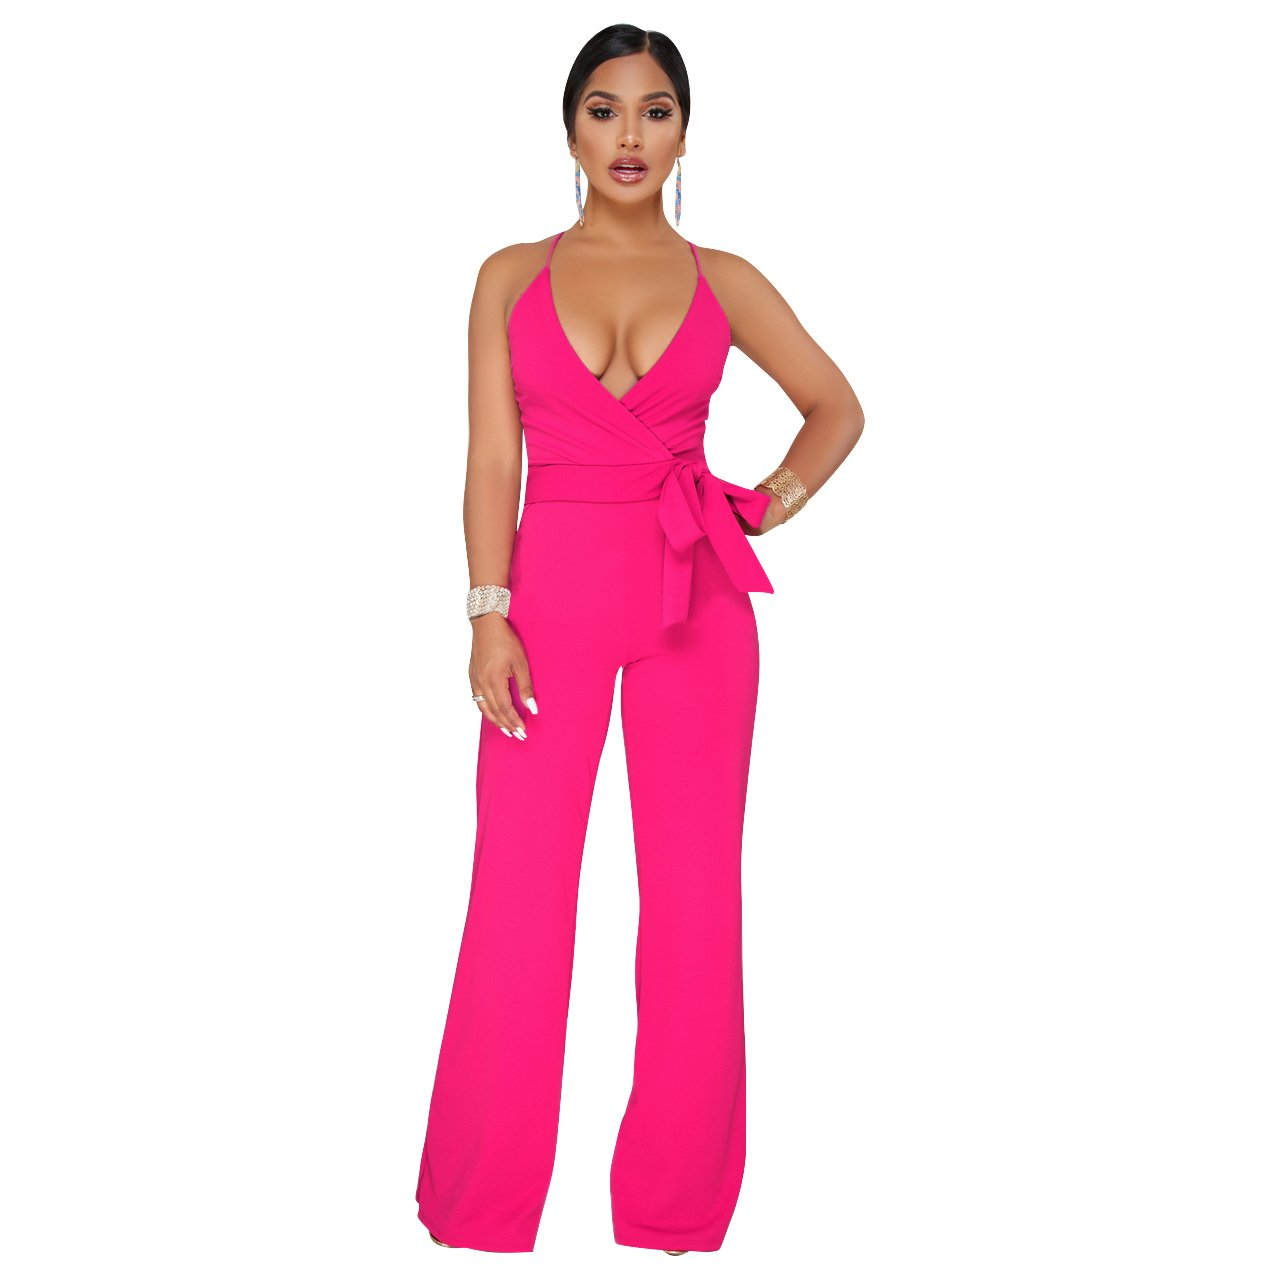 ece1fa1a1c78 Amazon.com  Ermonn Women s Wide Leg Jumpsuits Sexy Halter V Neck Sleeveless  Wrap Wasitband Jumpsuit Rompers  Clothing